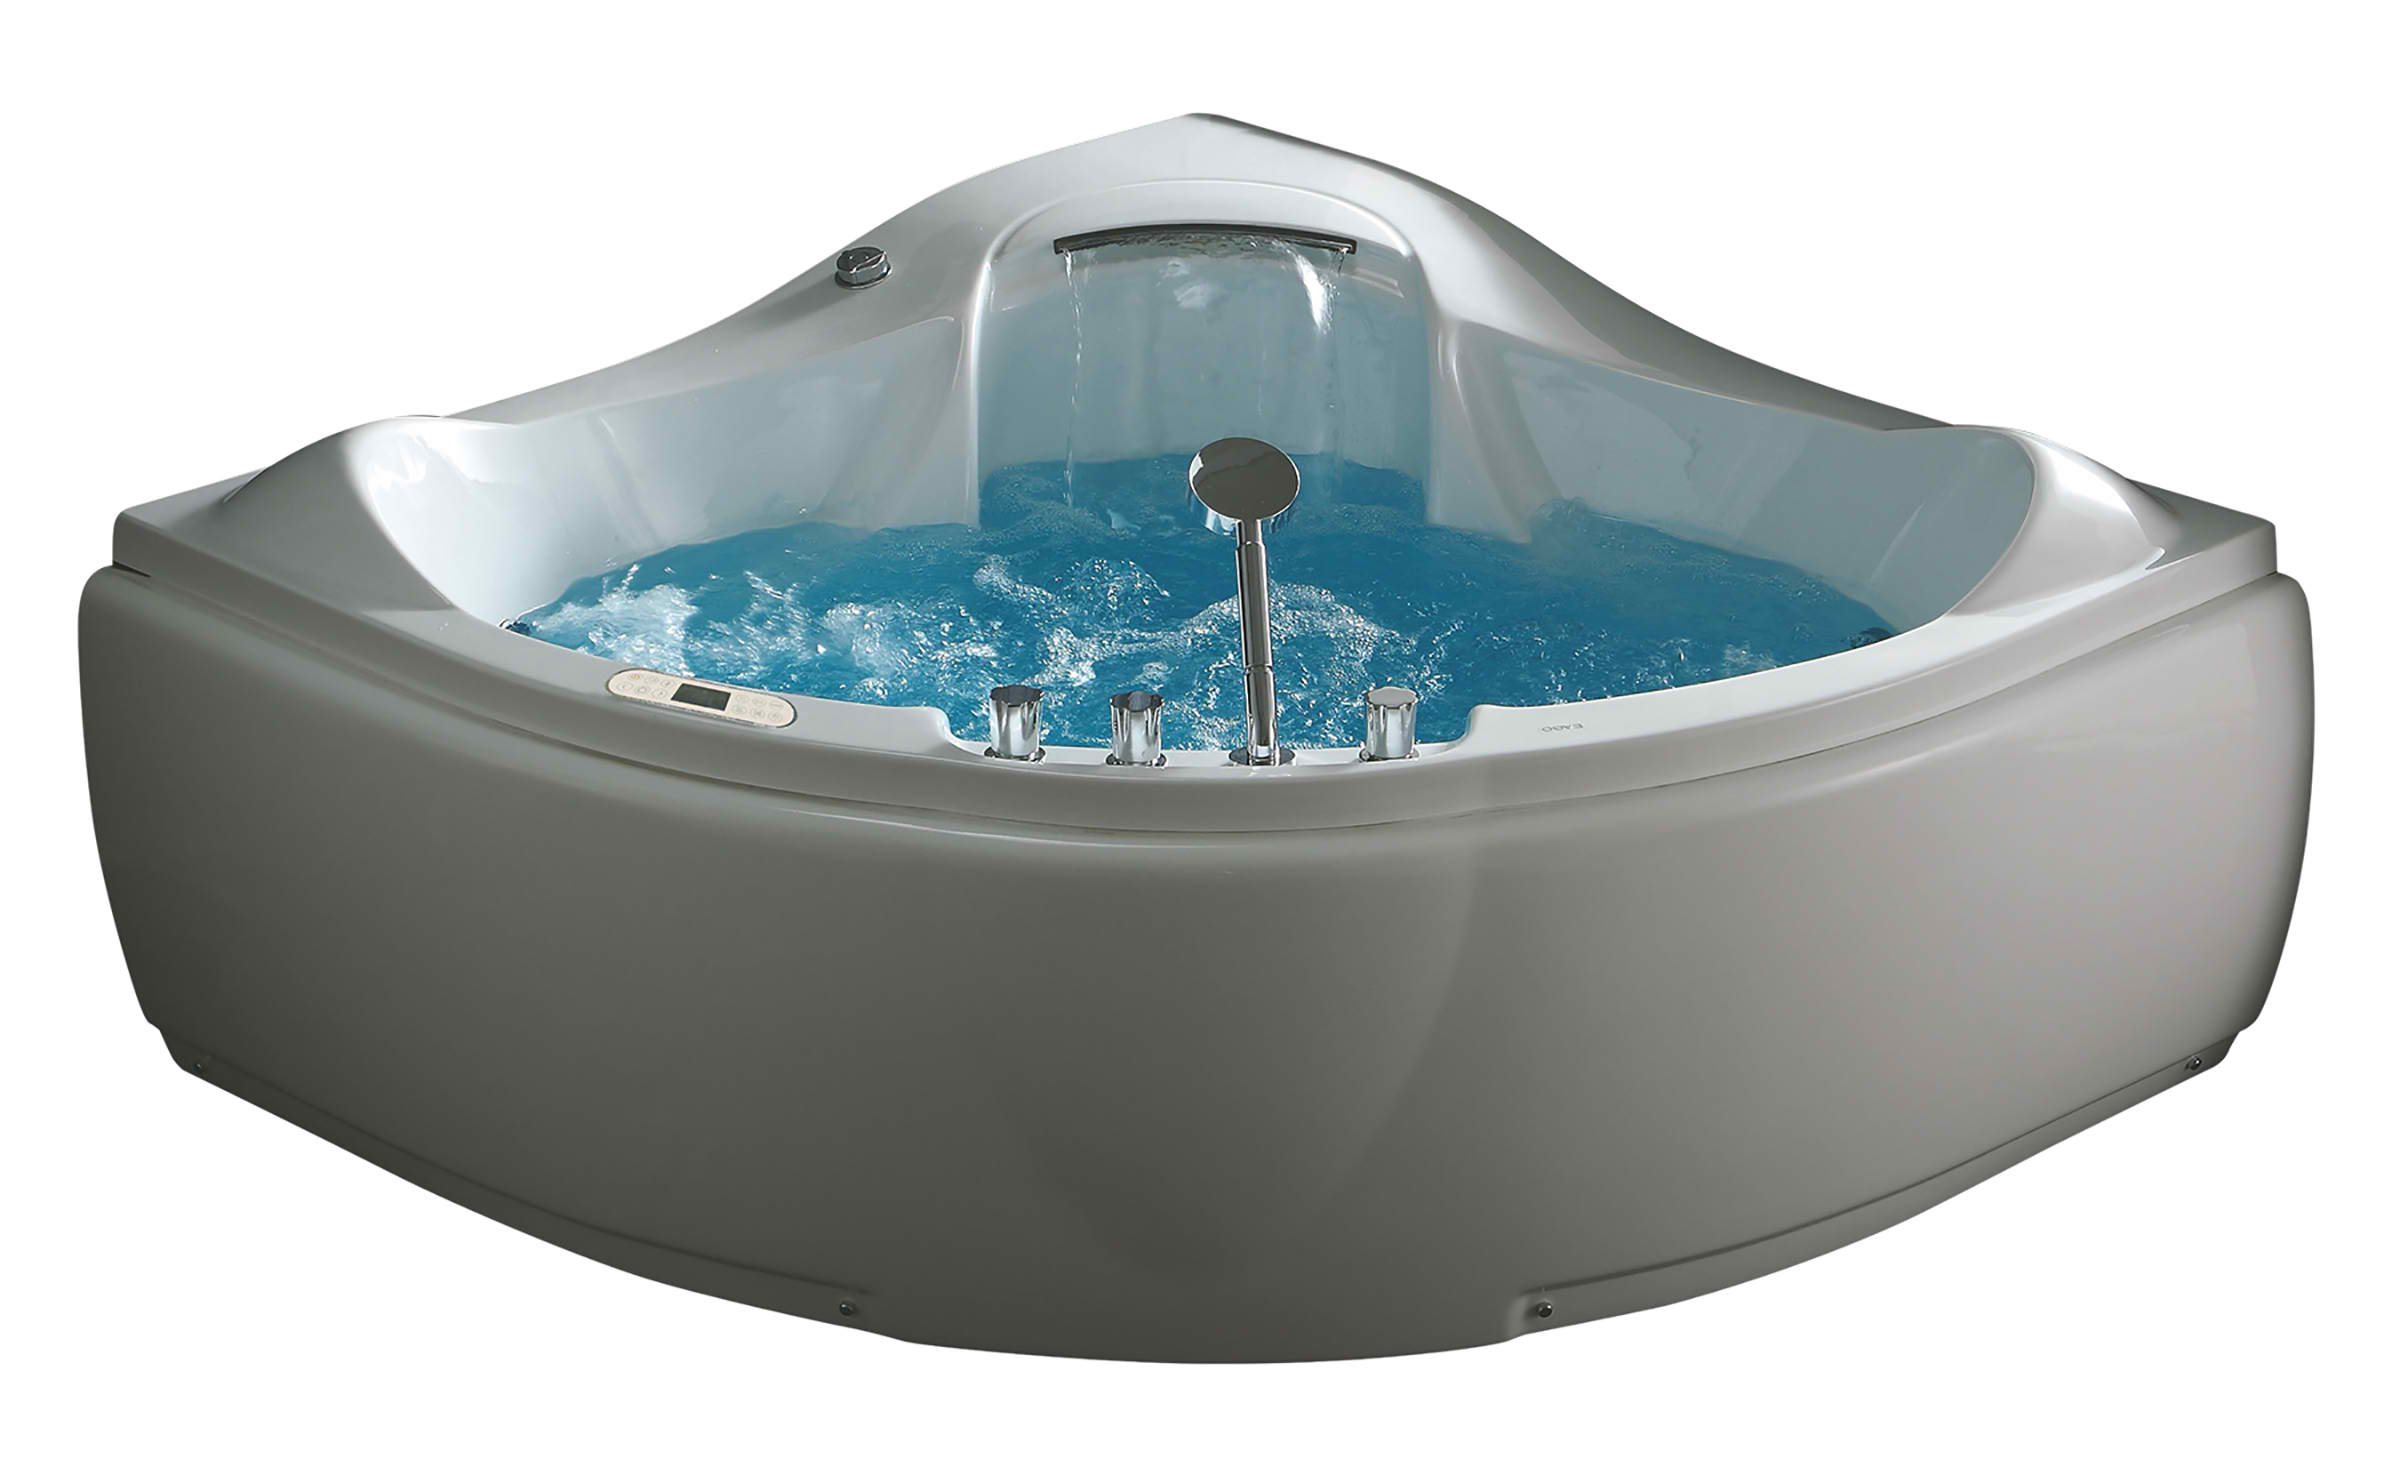 EAGO AM208ETL 5 ft Corner Acrylic White Waterfall Whirlpool Bathtub ...